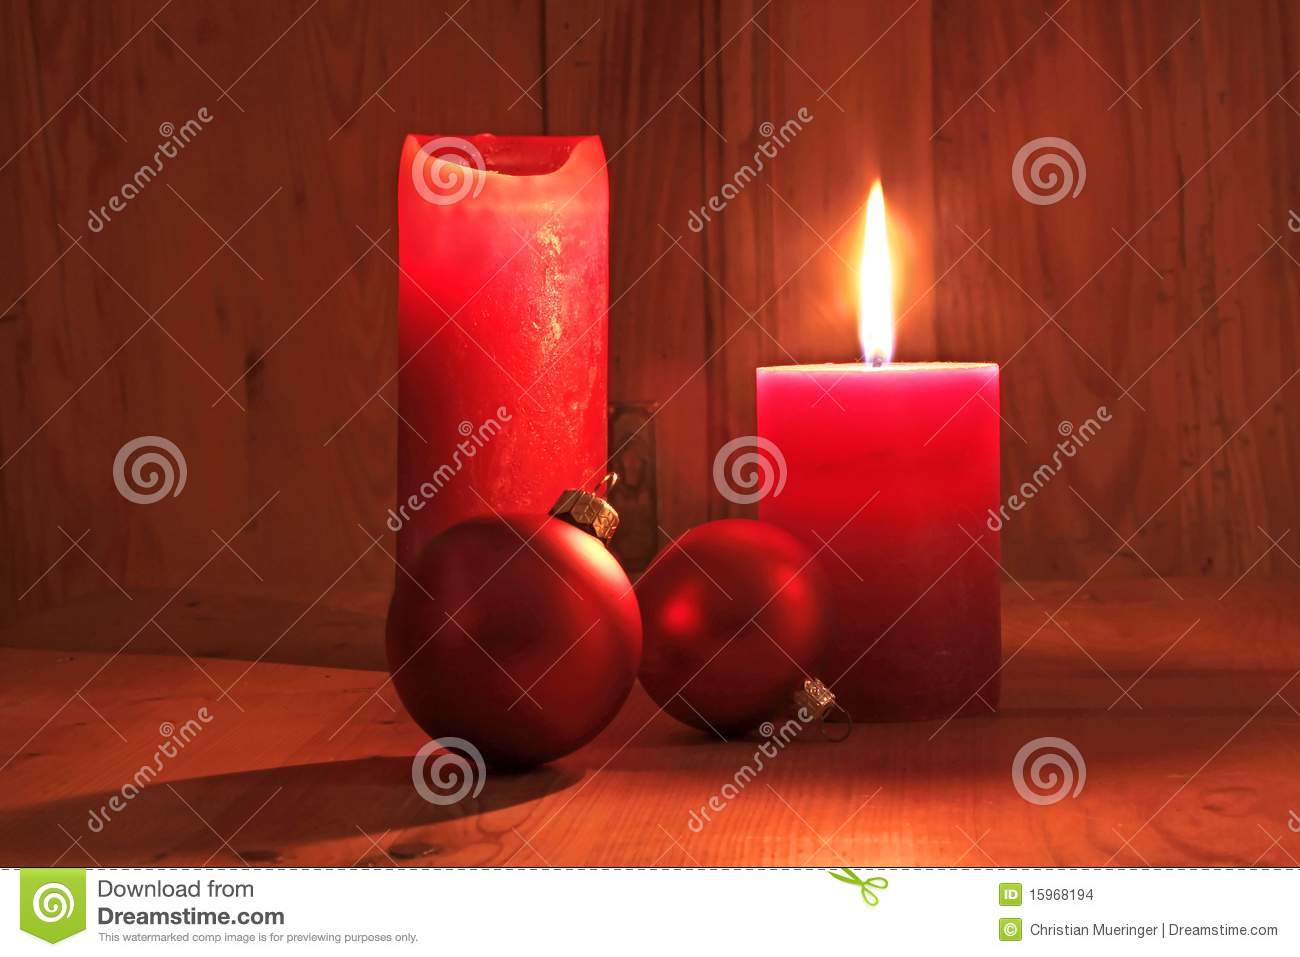 Red candles and Christmas balls